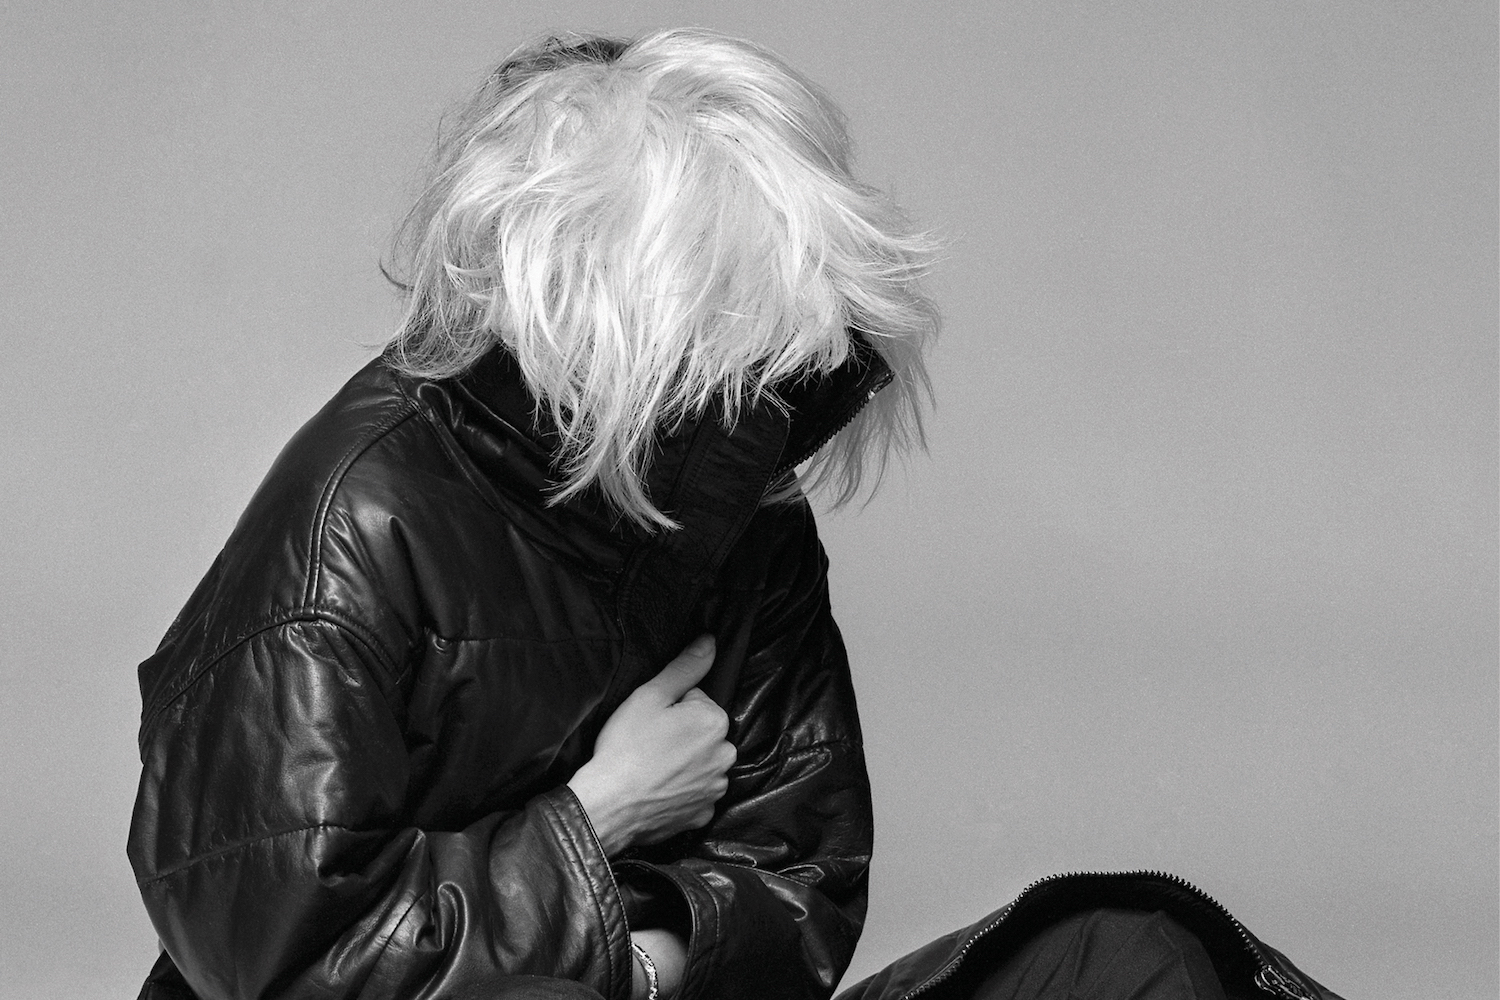 """Debbie Harry's memoir Face It will """"face up"""" to her past"""